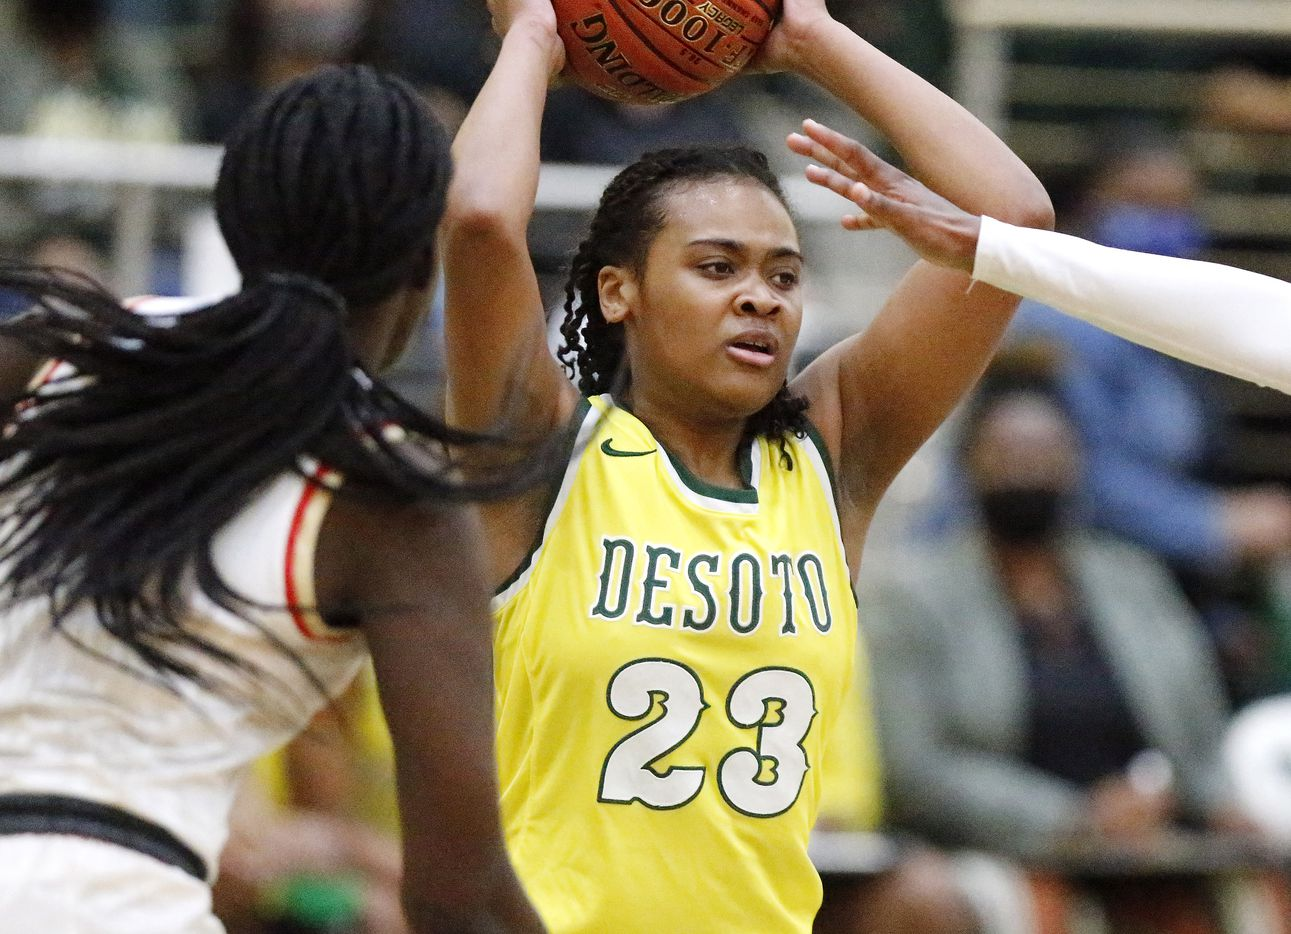 DeSoto High School guard Kendall Brown (23) looks to pass during the second half as South Grand Prairie High School played DeSoto High School in a class 6A semifinal girls basketball game played at Prosper High School on Saturday , March 6, 2021.  (Stewart F. House/Special Contributor)